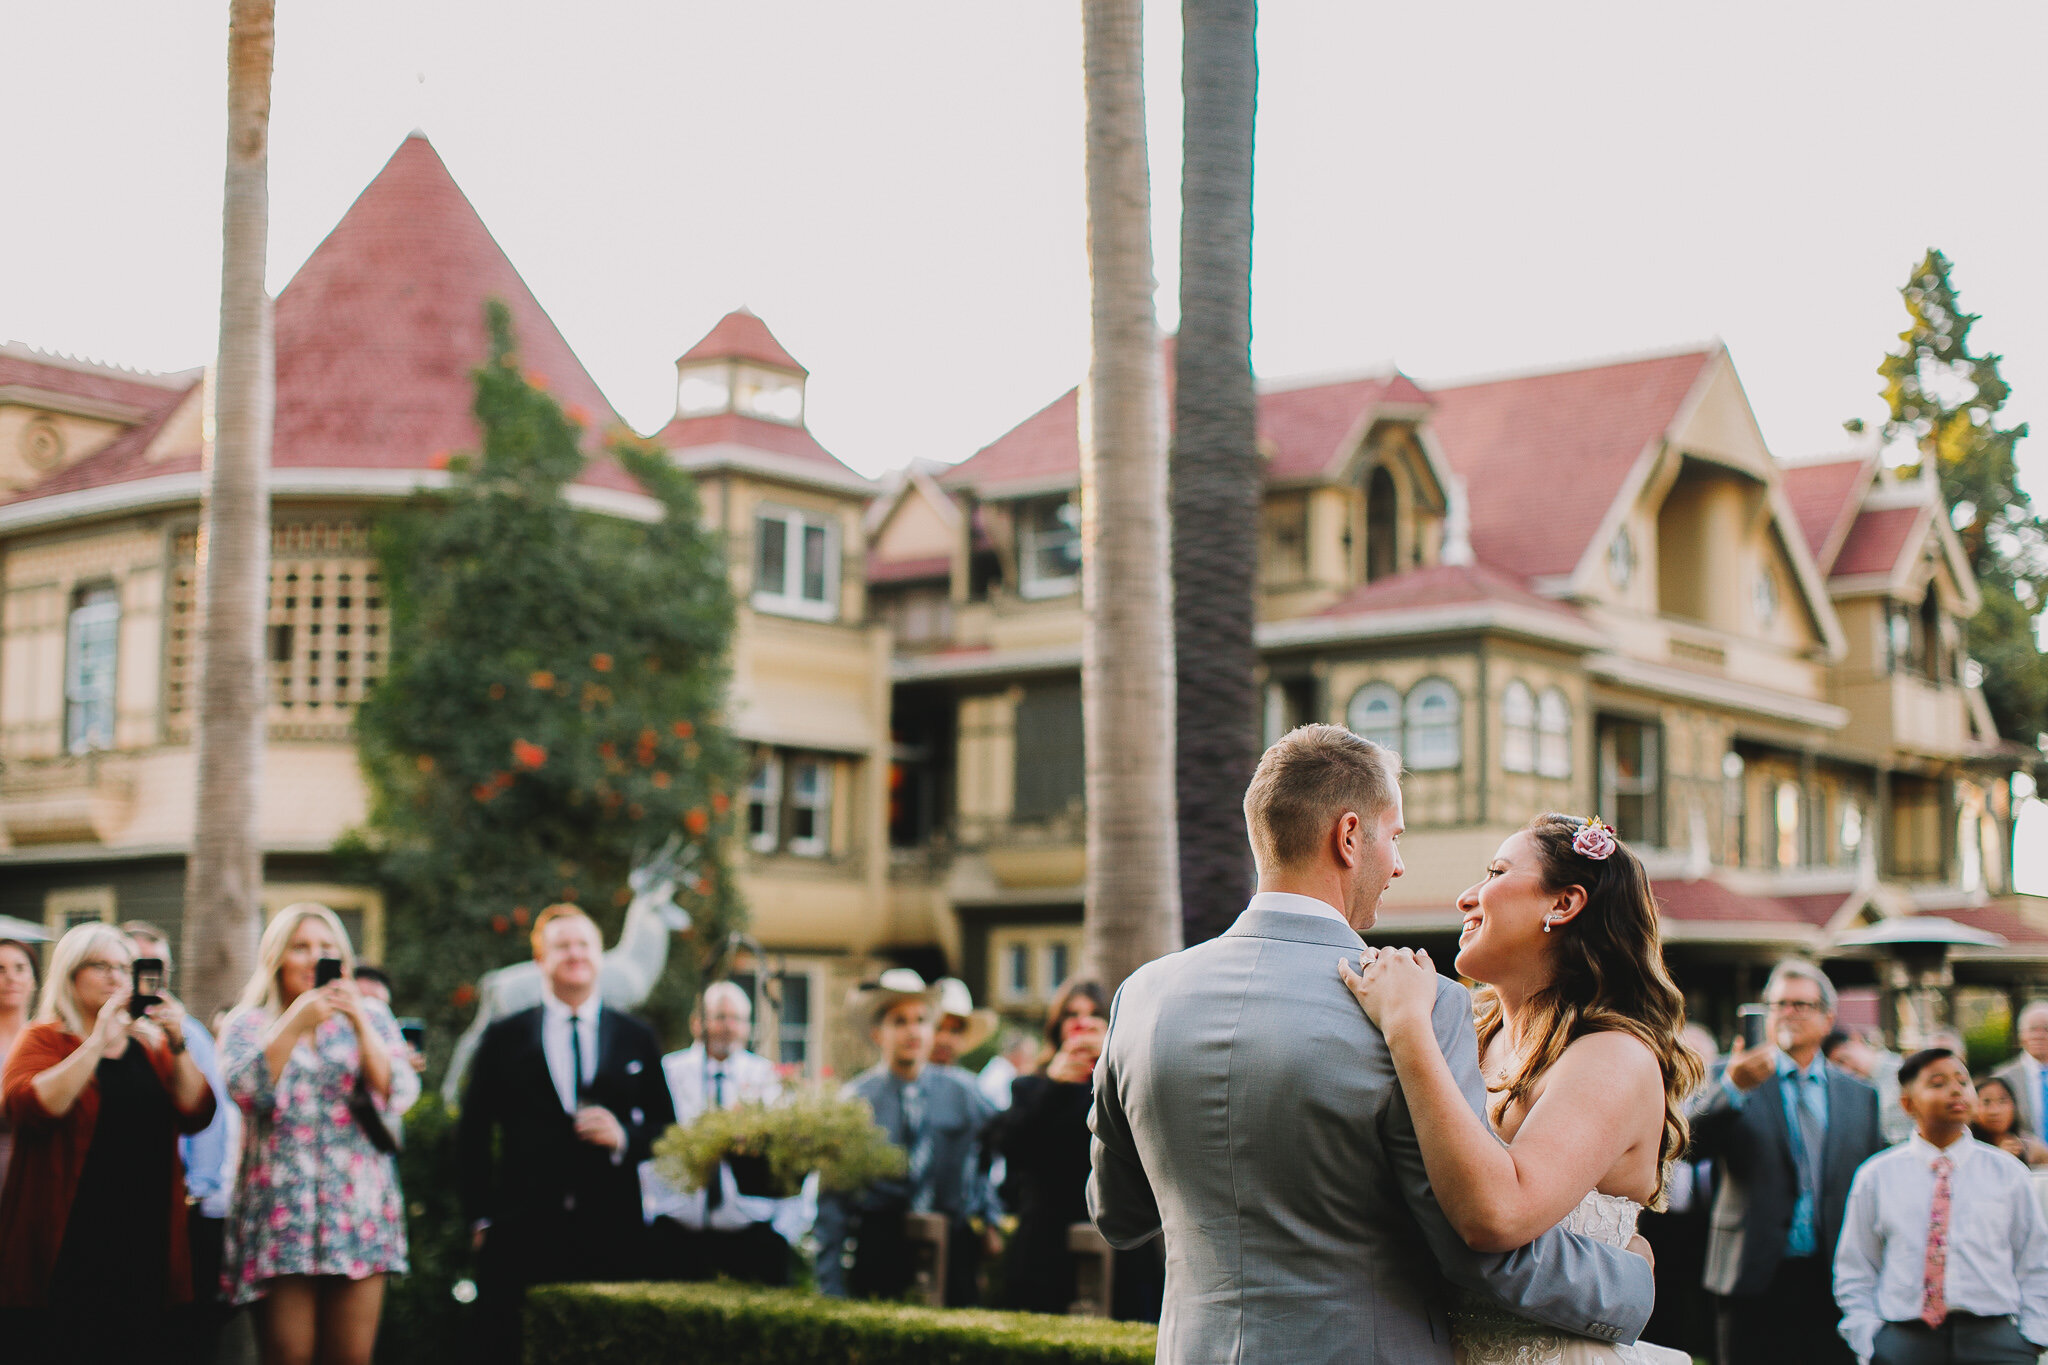 Archer Inspired Photography - Casey and Monique - Winchester Mystery House Wedding - San Jose CA-29.jpg